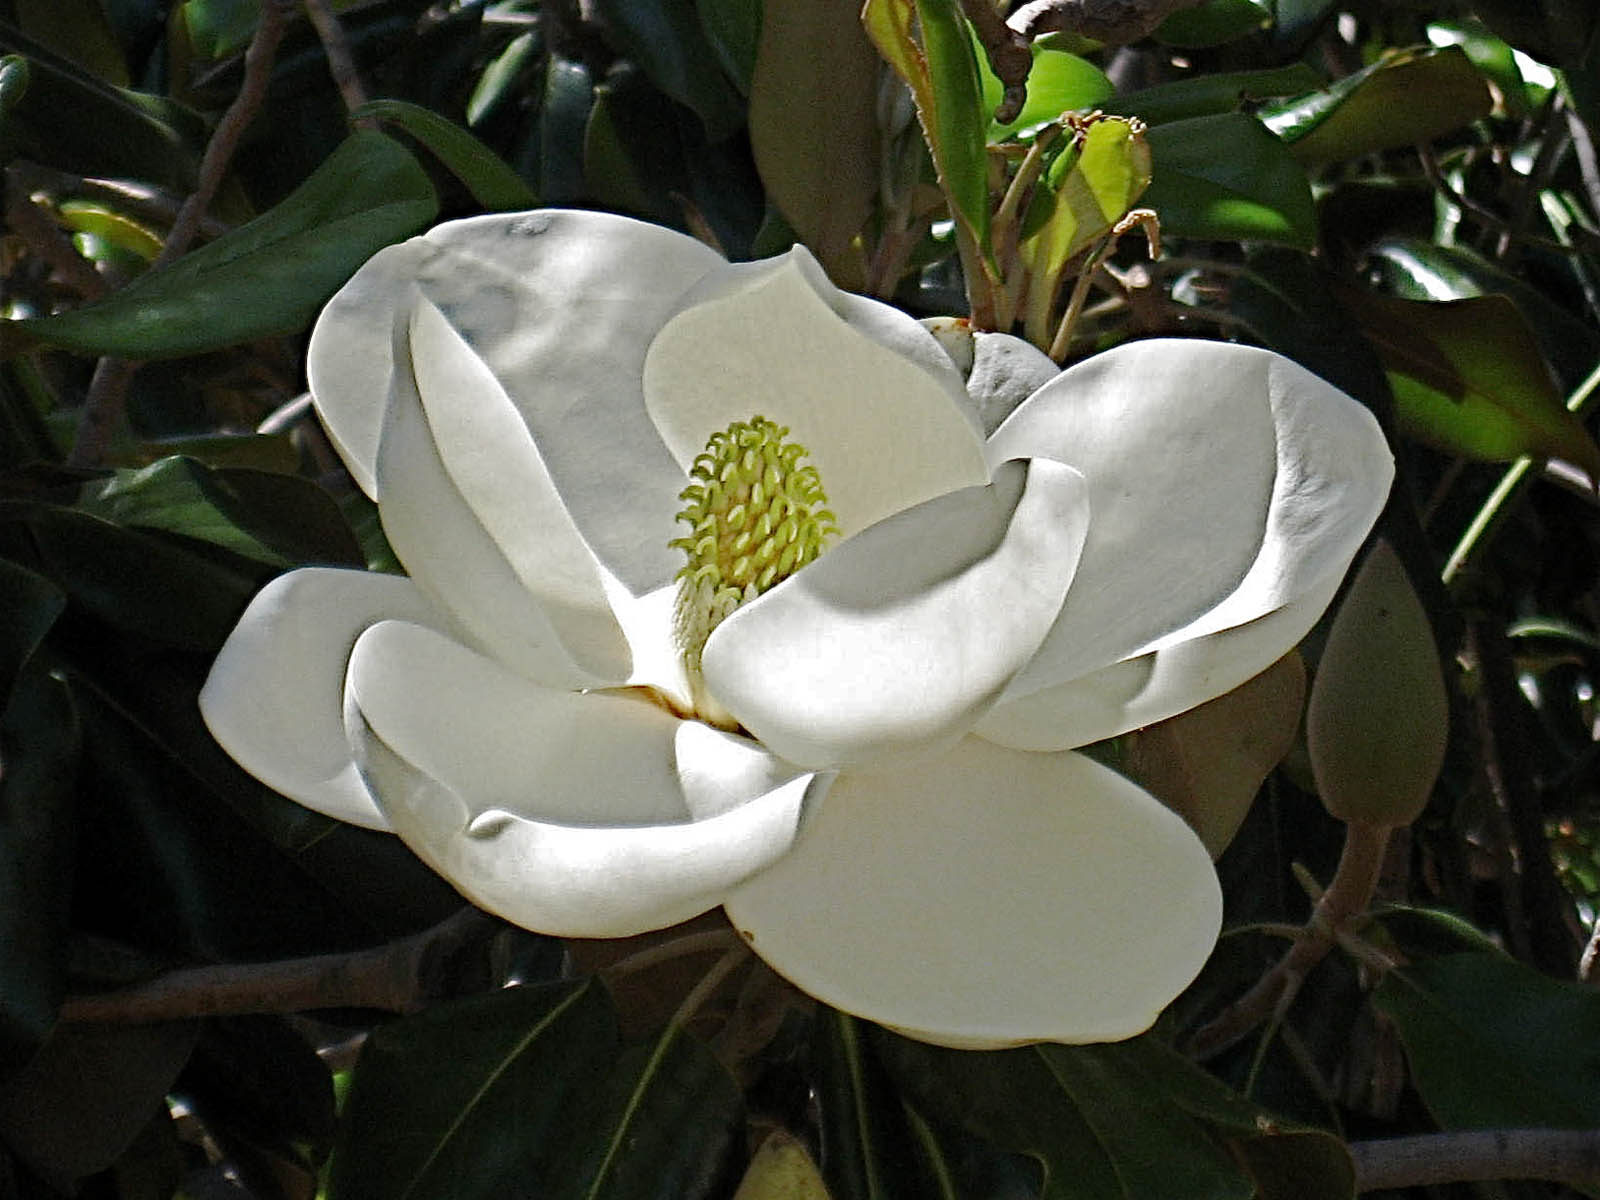 Magnolia Flower Black And White Magnolia blossom